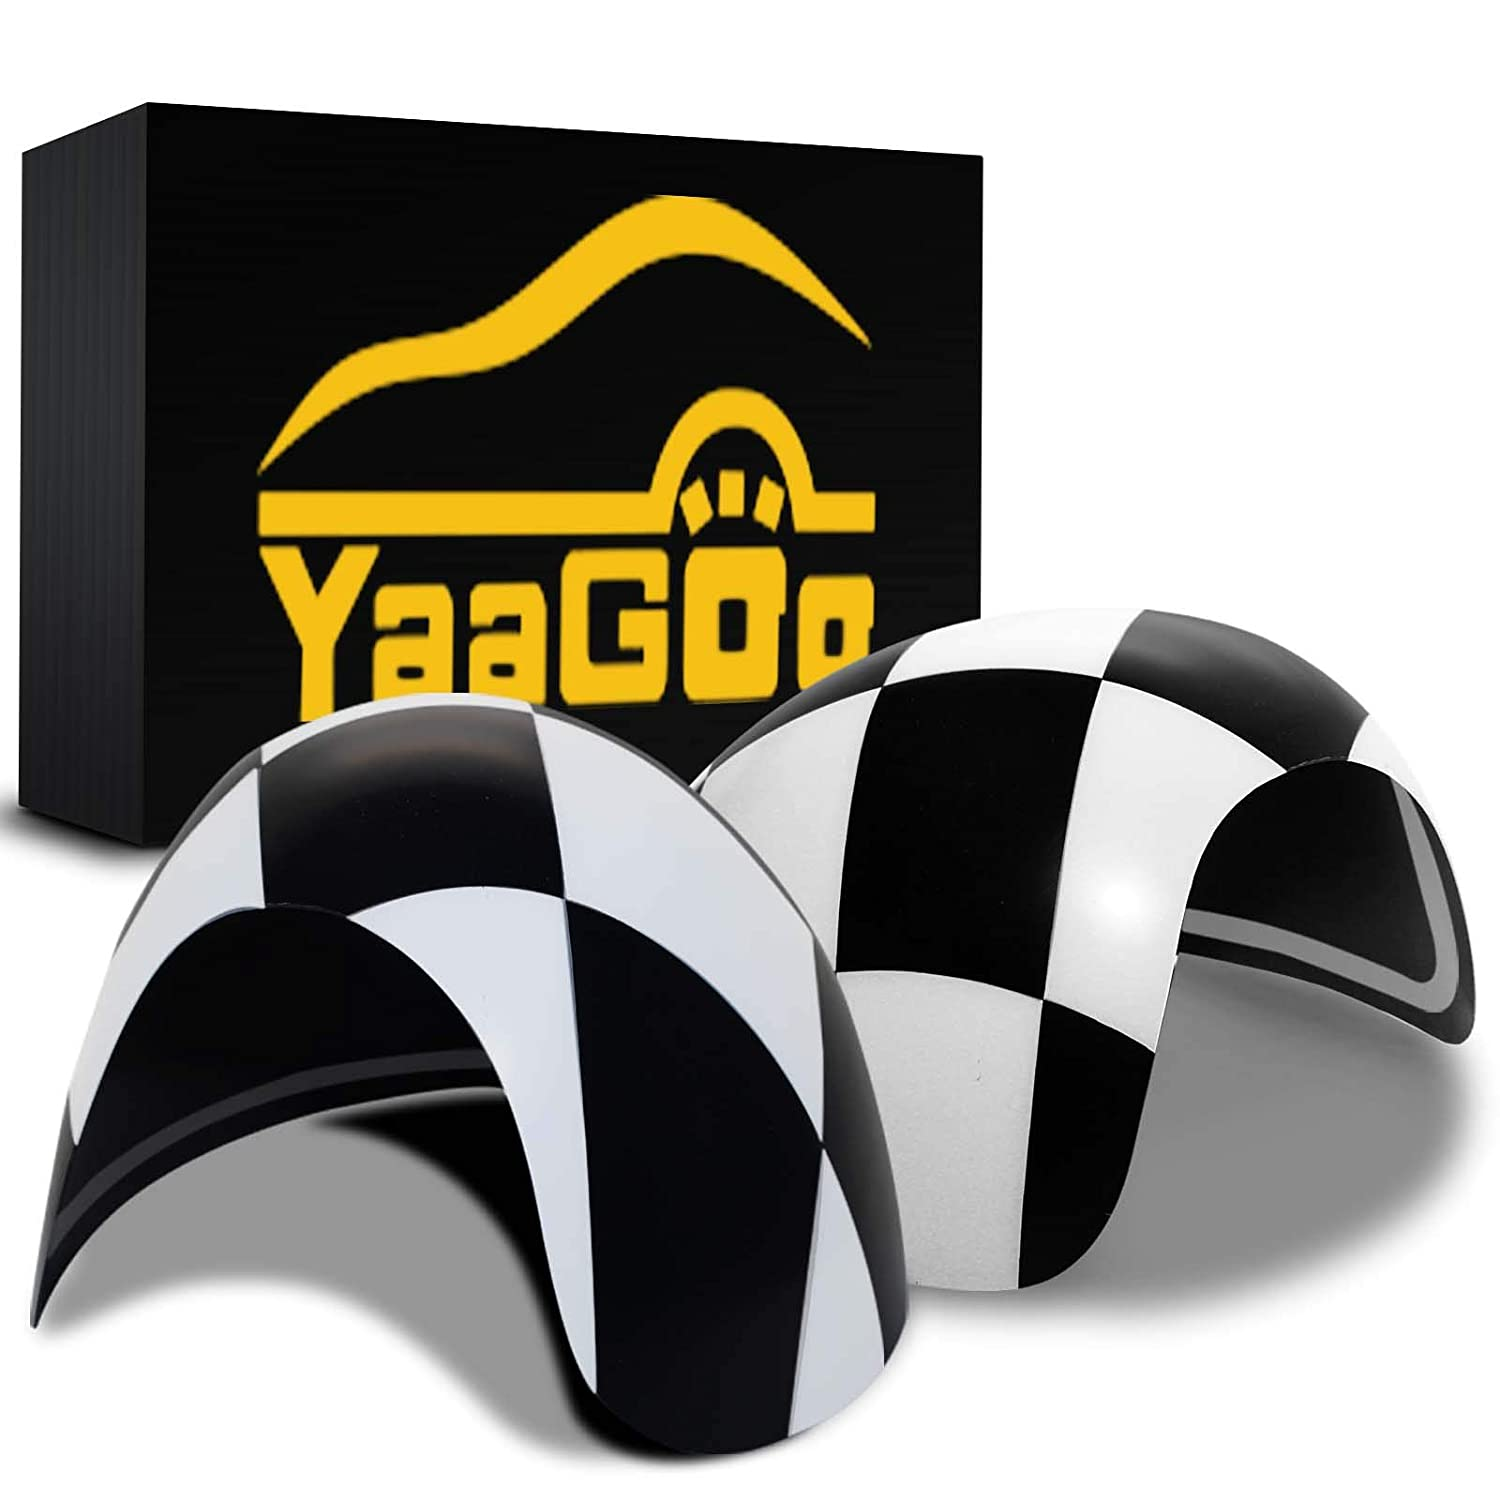 YaaGoo Out Side Wind Door Mirror Cover Plastic Decoration with Sticker Tape, for Mini Cooper (Checkered, R56R55R56R58R59R60R61 Power Folding) Yi-tech Industrial Co. Ltd